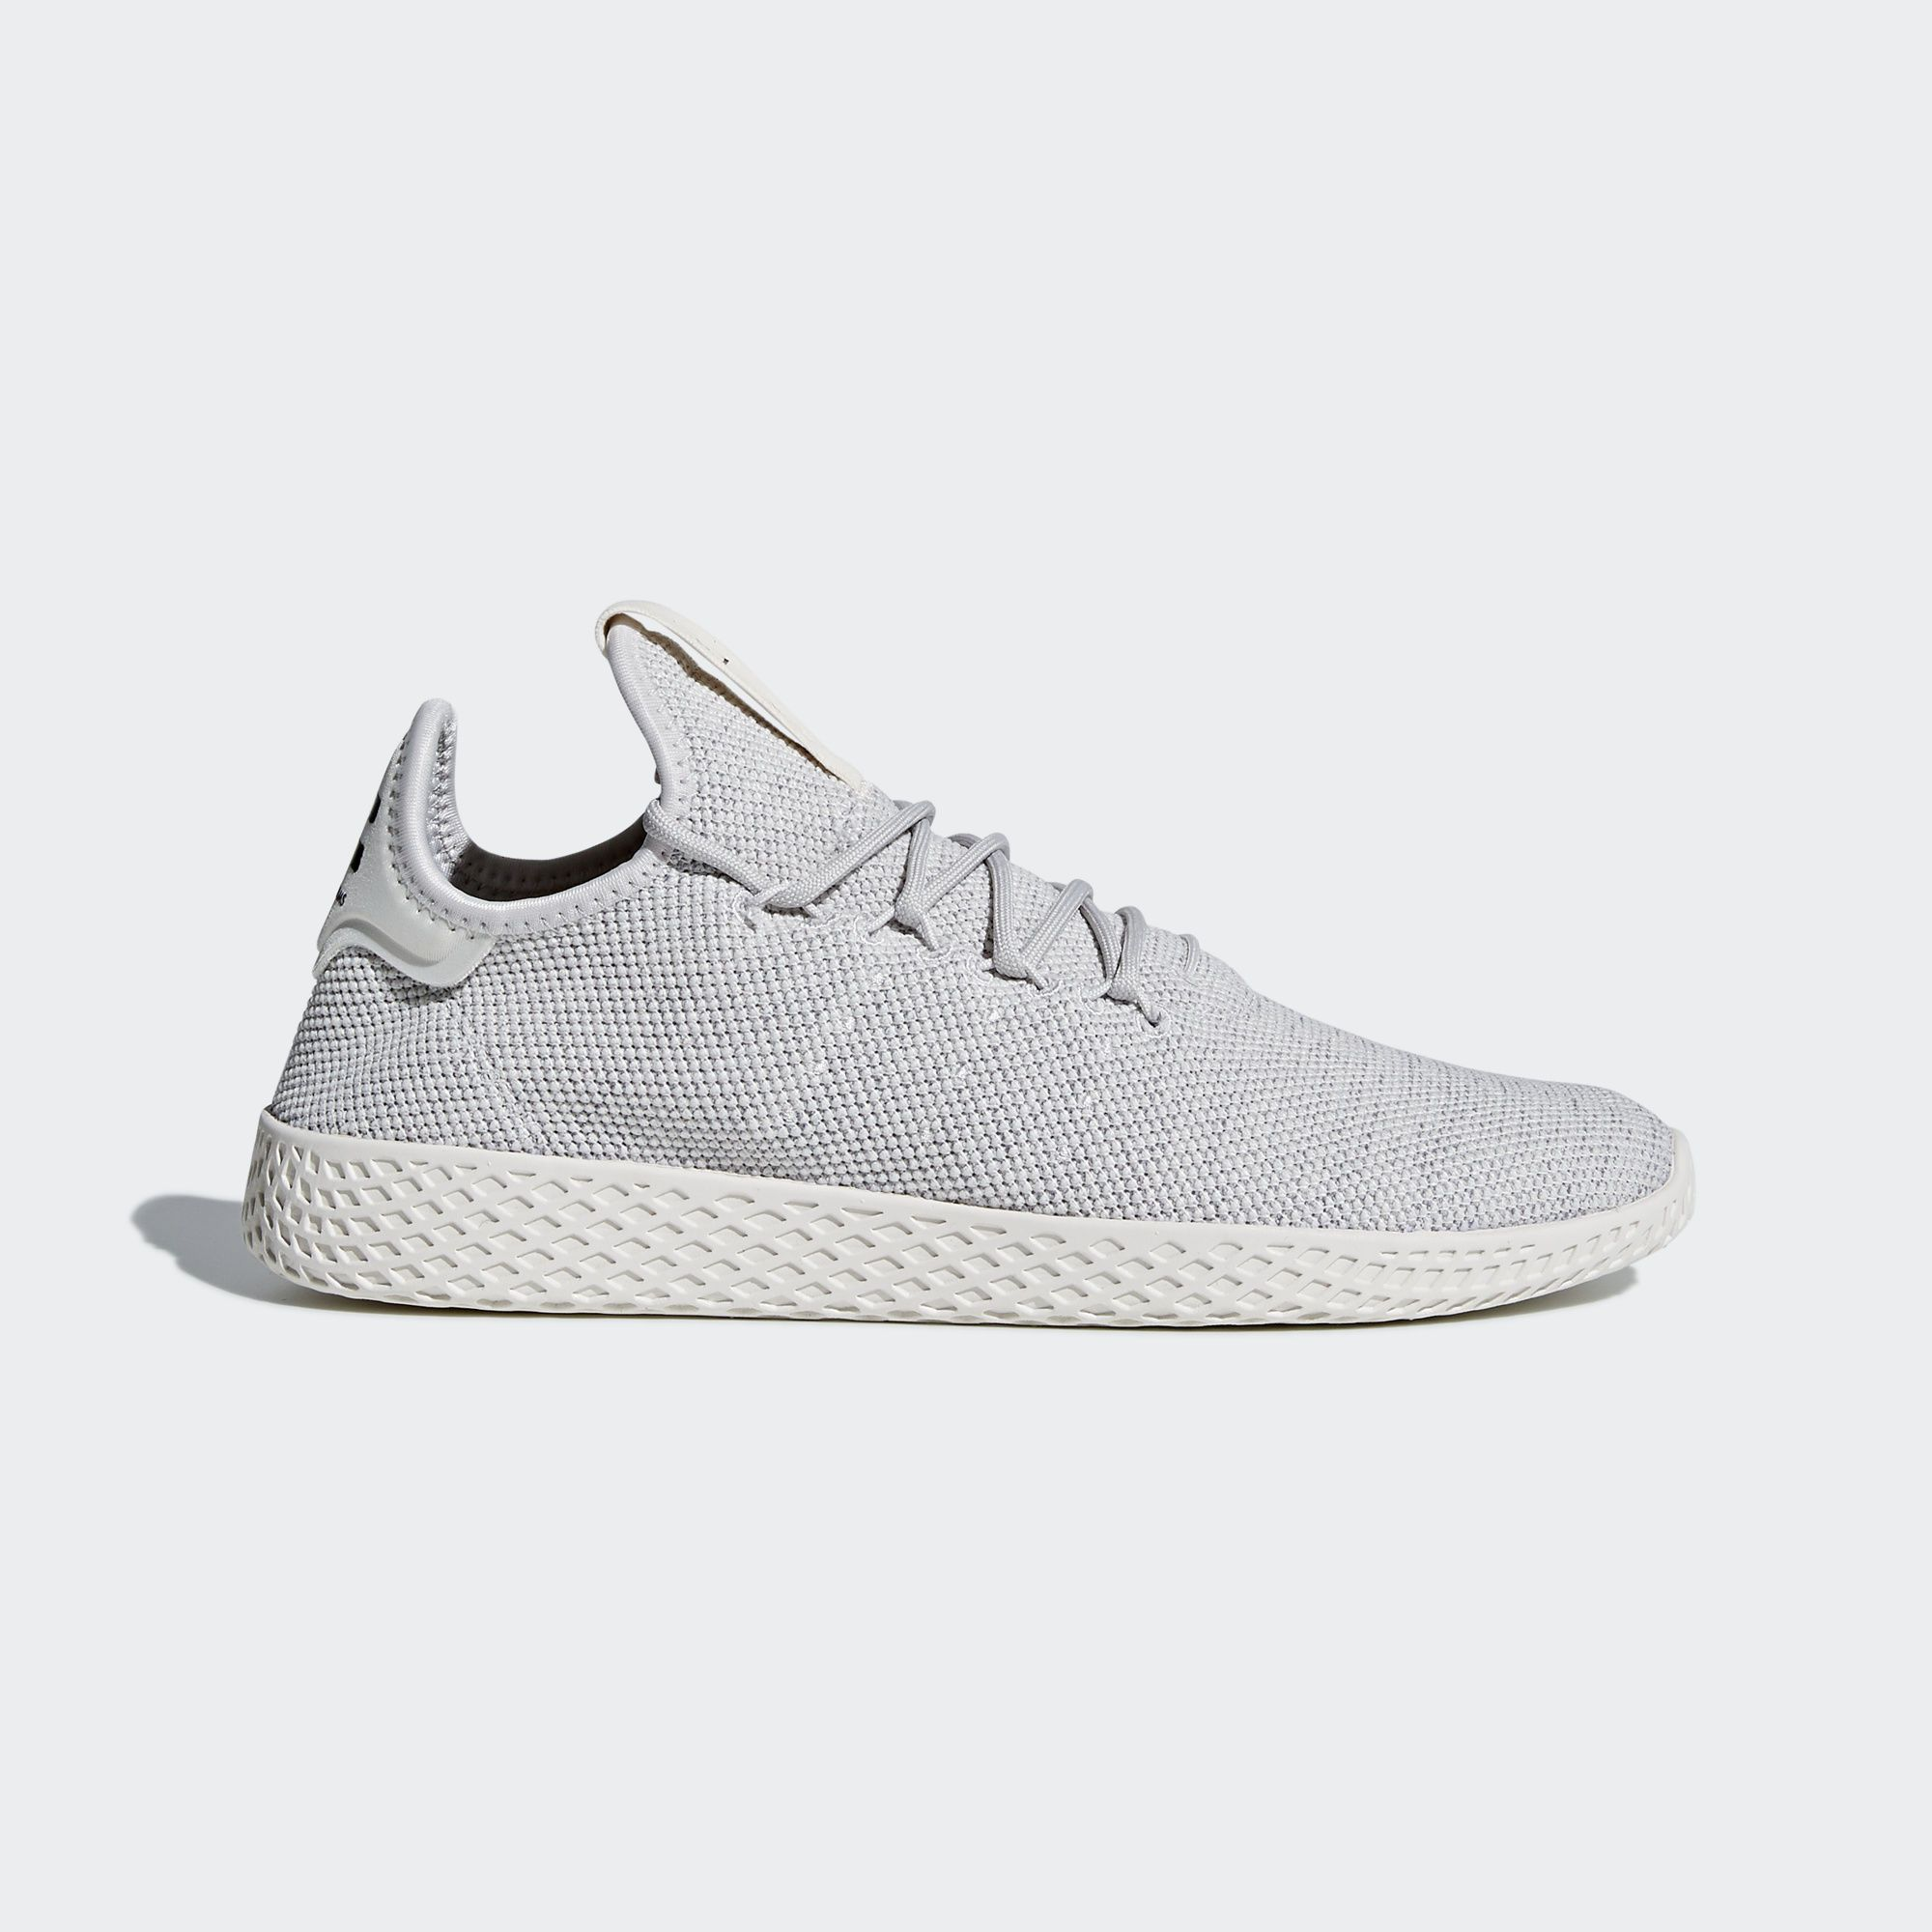 Pharrell Williams Work In Music Film And Fashion Blurs Boundaries To Unite Different Elements The Williams Tennis Adidas Pharrell Williams Pharrell Williams